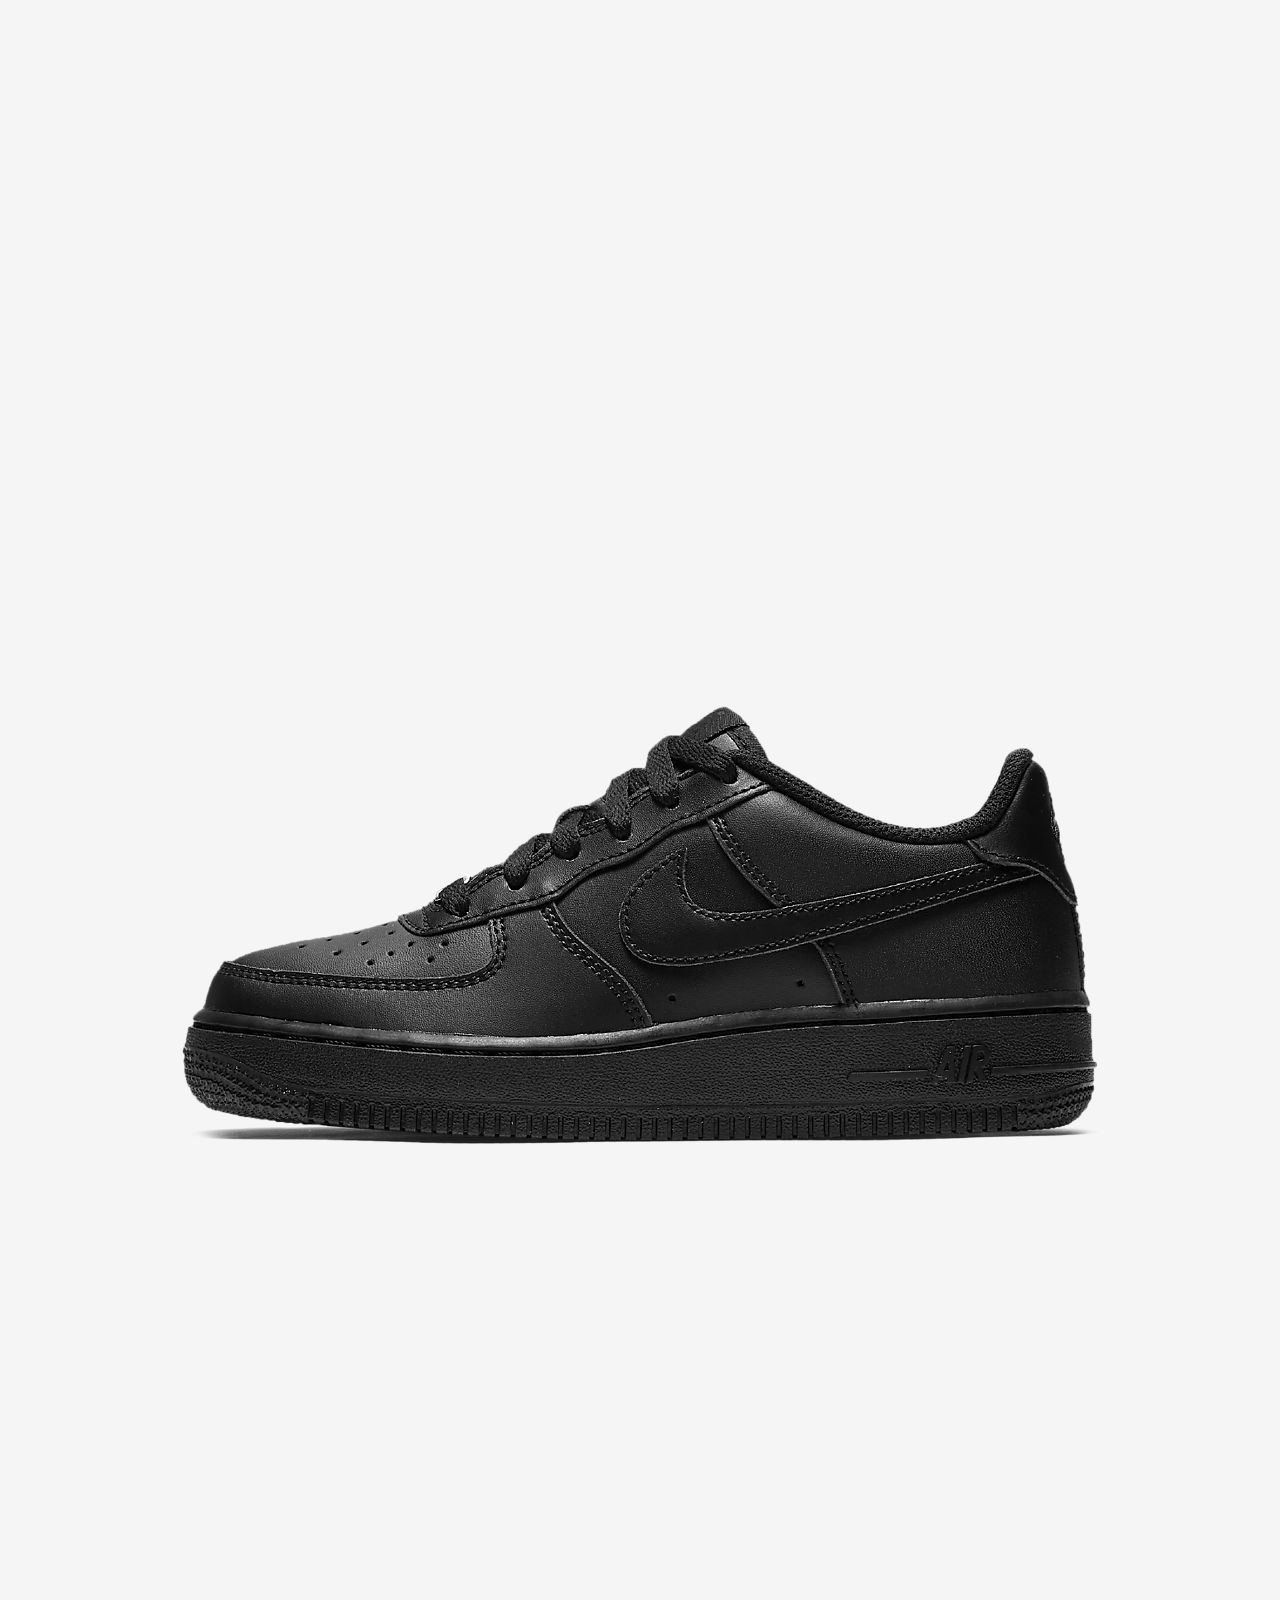 calzado para ni os talla grande nike air force 1 mx. Black Bedroom Furniture Sets. Home Design Ideas